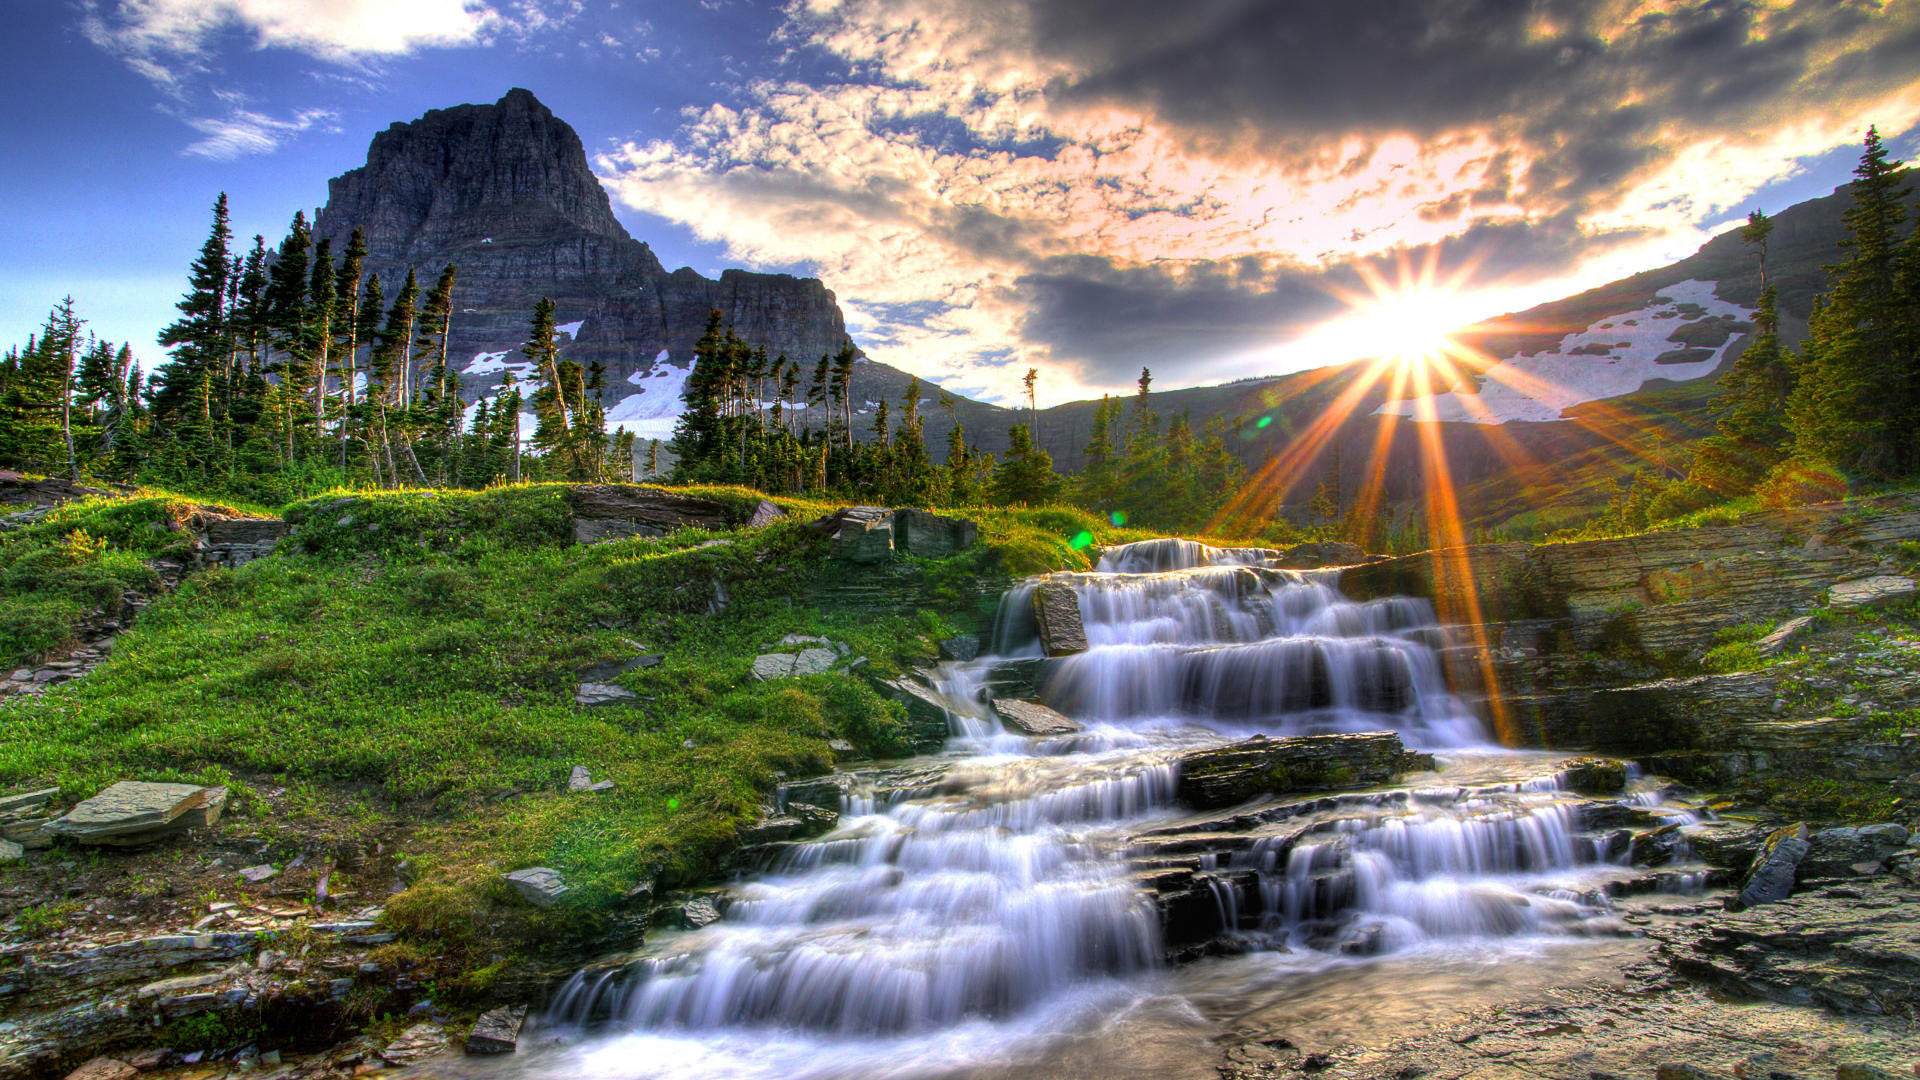 Amazing Landscape Photos Widescreen 2 HD Wallpapers